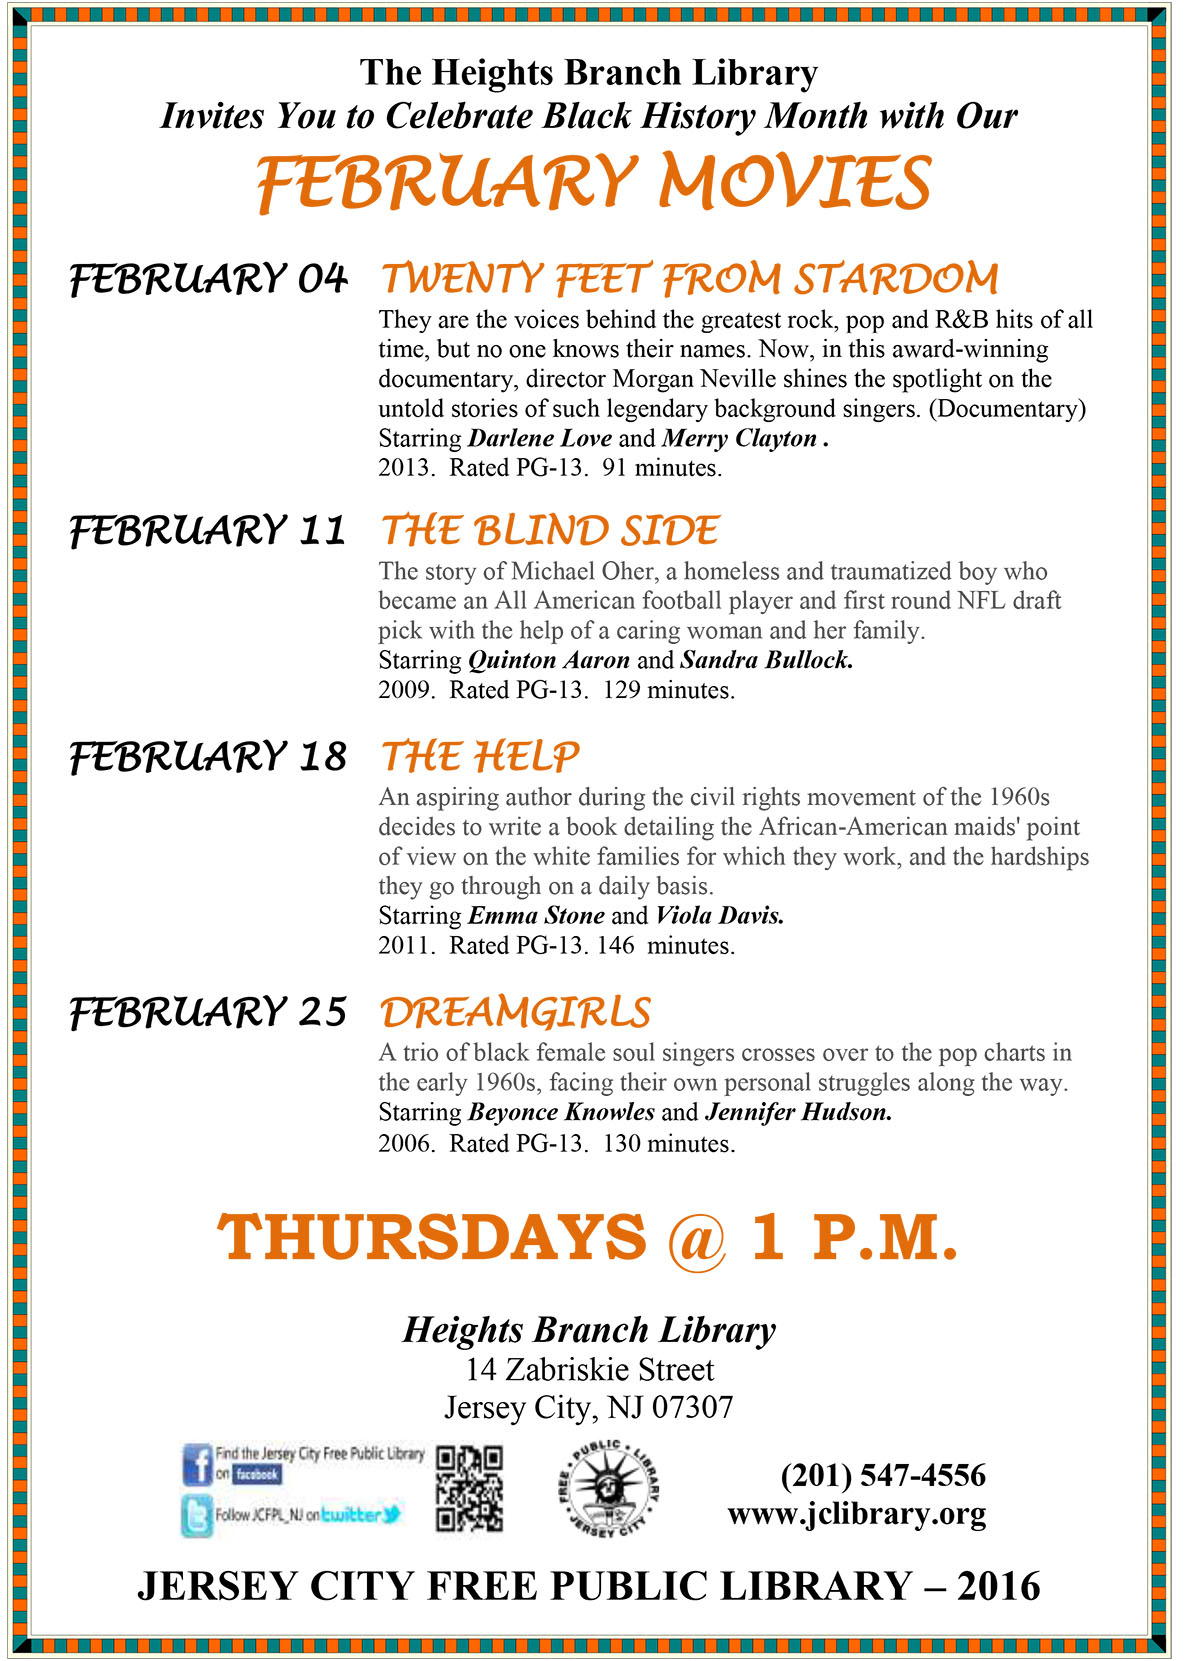 FEBRUARY MOVIES: DREAMGIRLS - The Office of Cultural Affairs